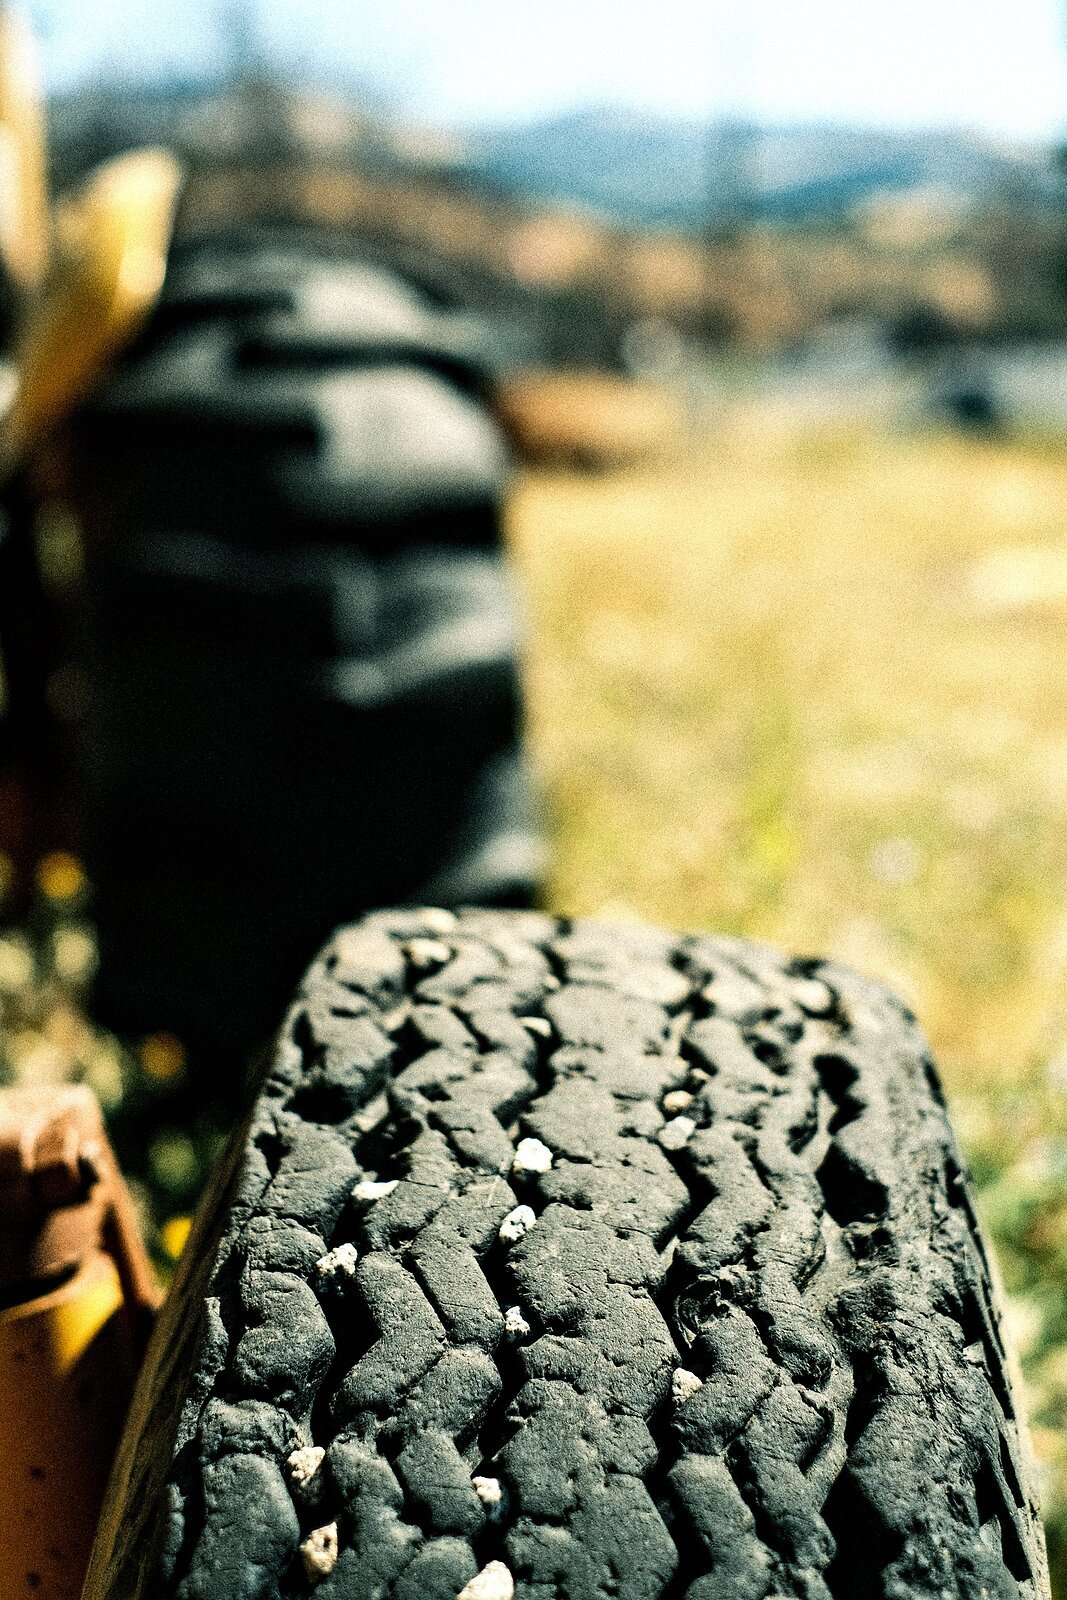 XPro3_July21_21_old_tractor_tires.jpg